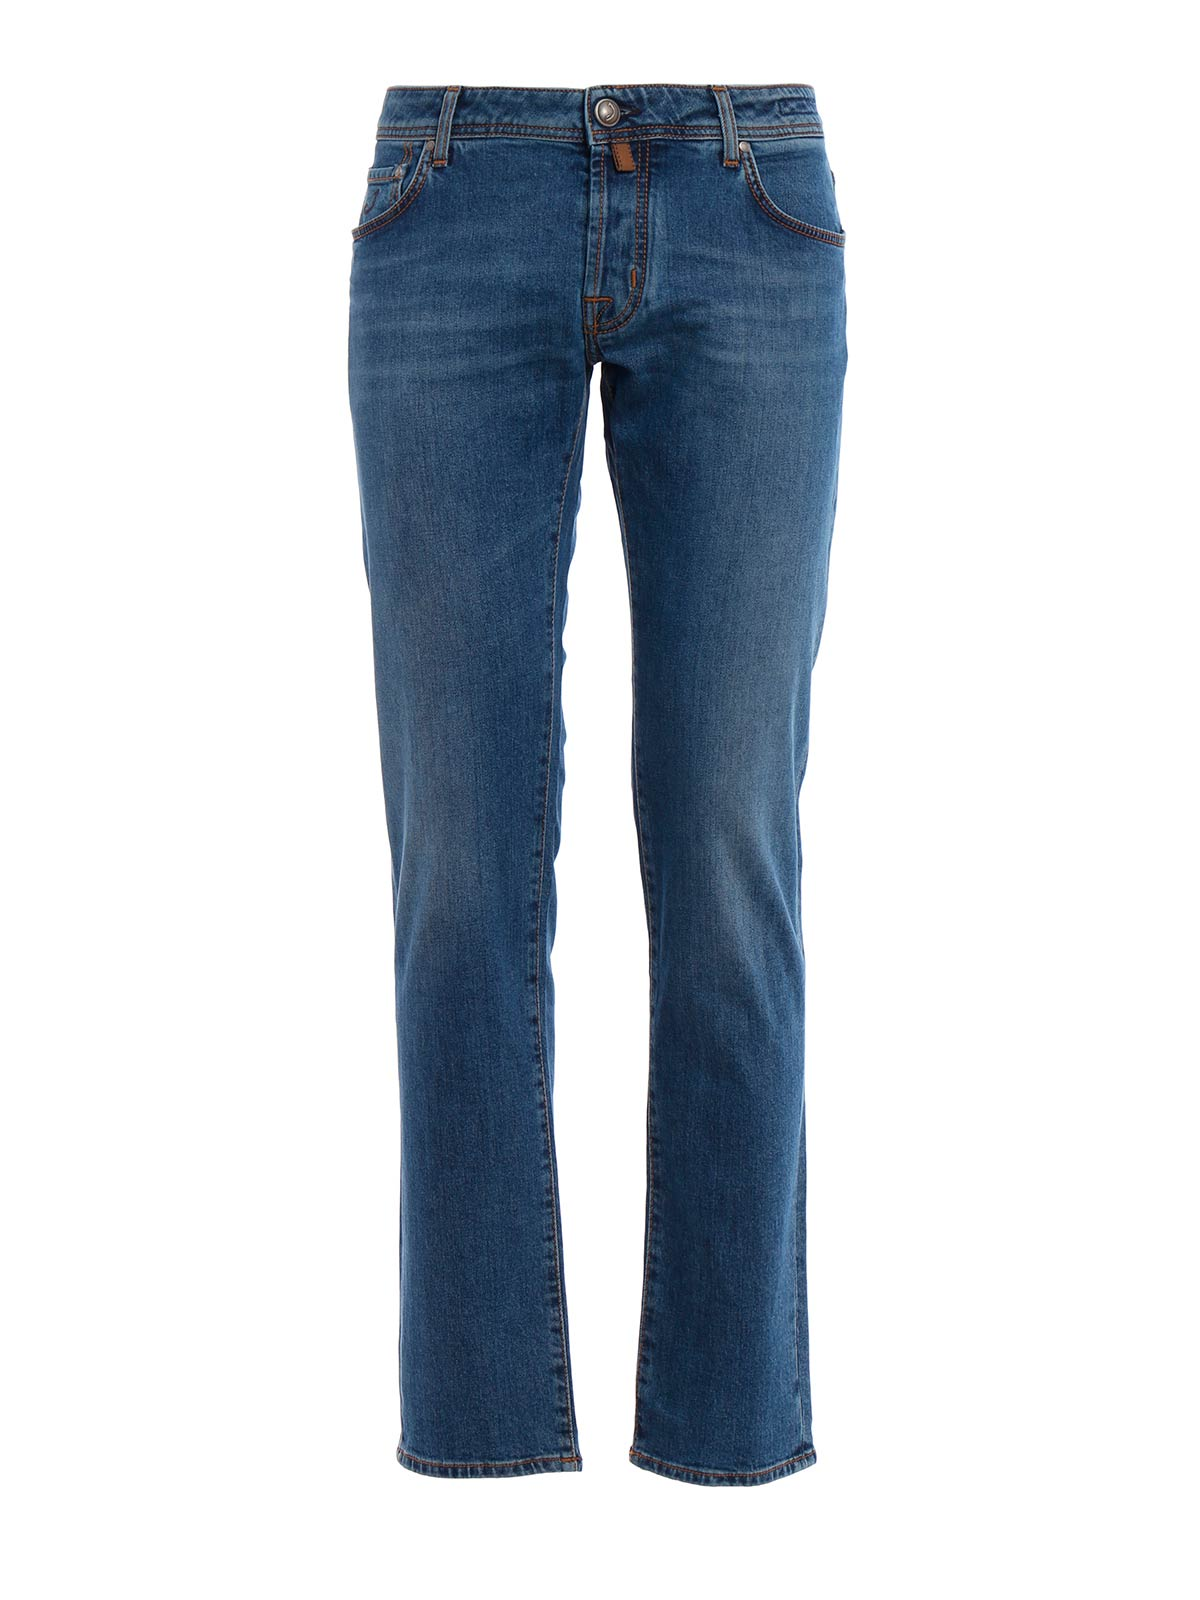 Picture of JACOB COHEN | Men's Style 622 Jeans